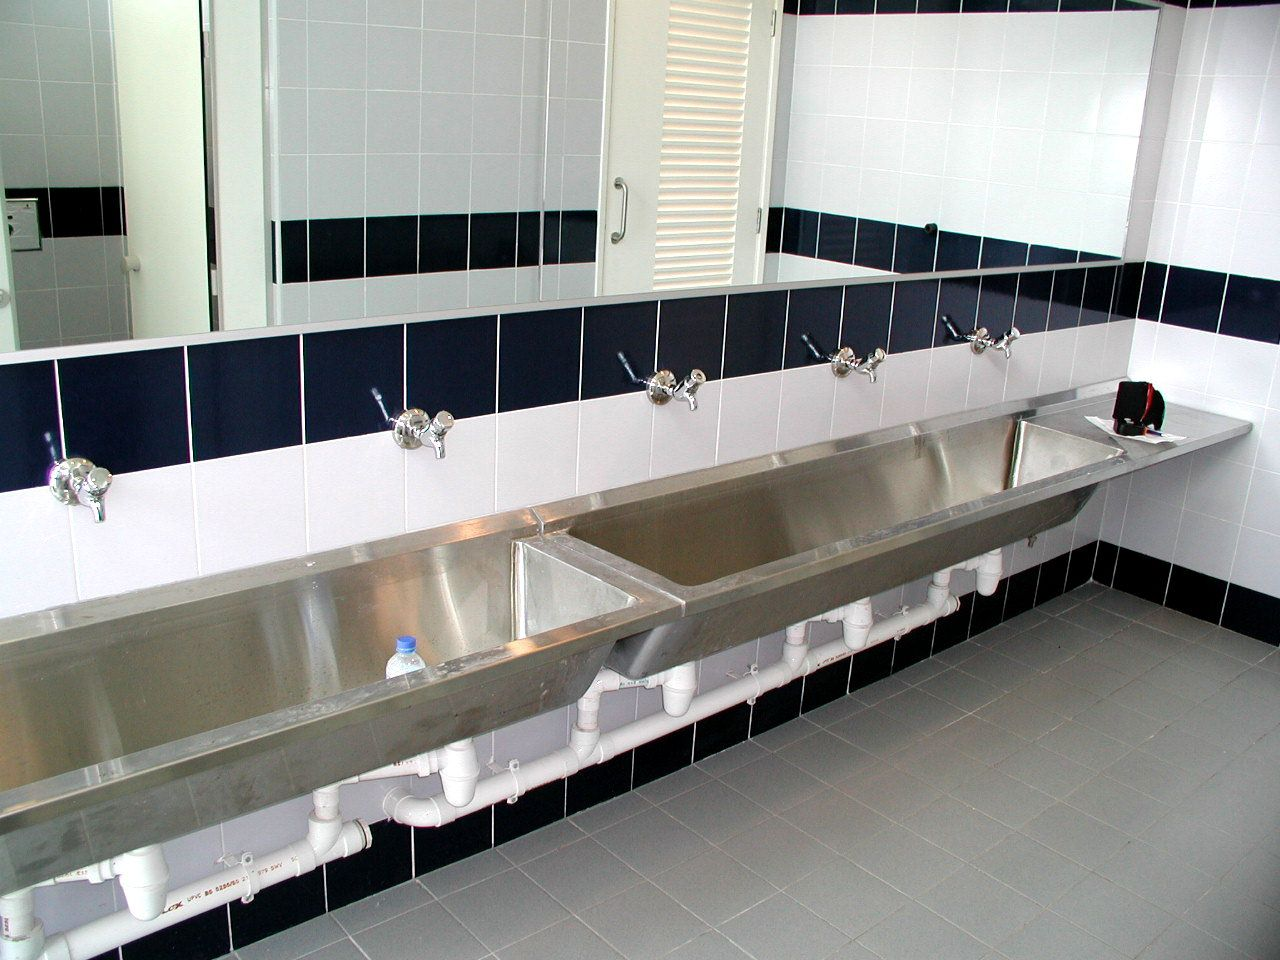 Stainless Steel Bathroom Sinks formercial Areas Home Ideas